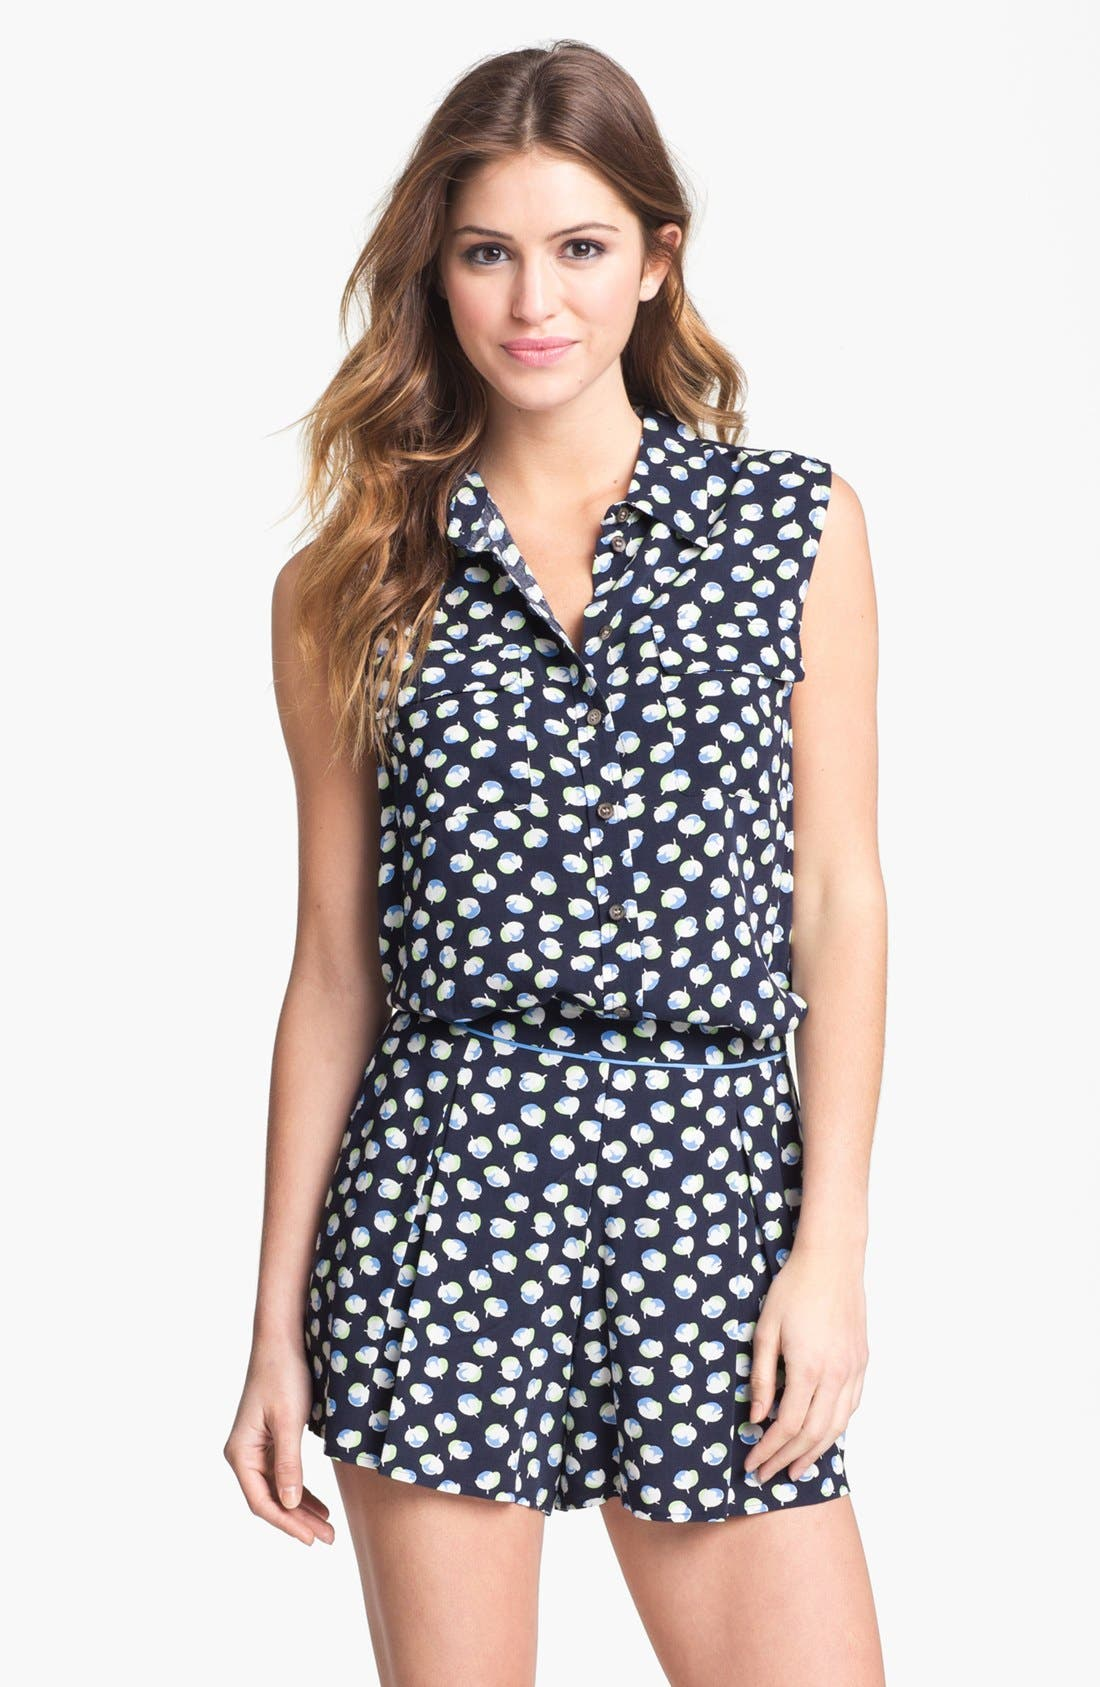 Alternate Image 1 Selected - Two by Vince Camuto Sleeveless Floral Shirt